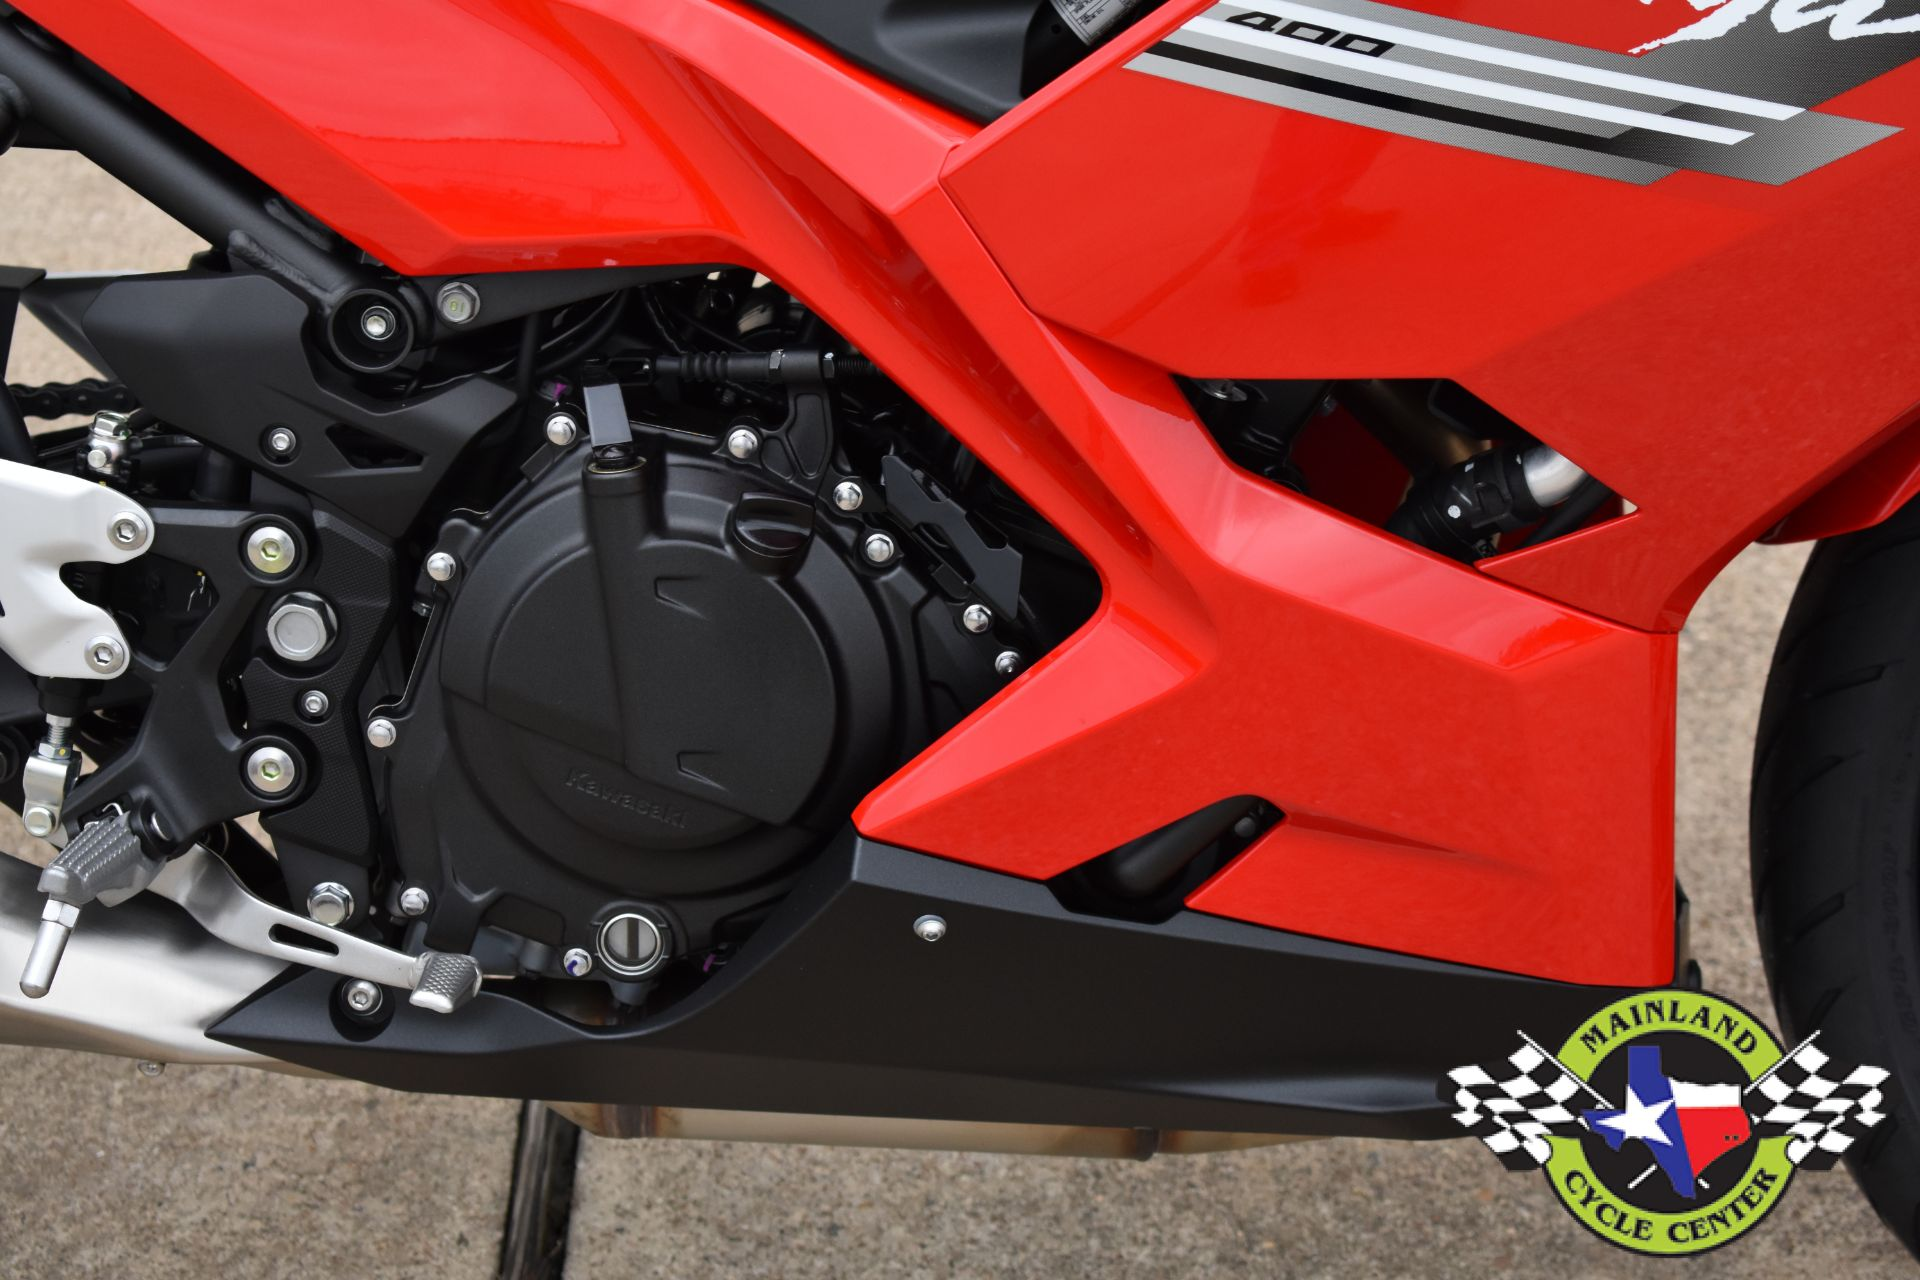 2021 Kawasaki Ninja 400 ABS in La Marque, Texas - Photo 12